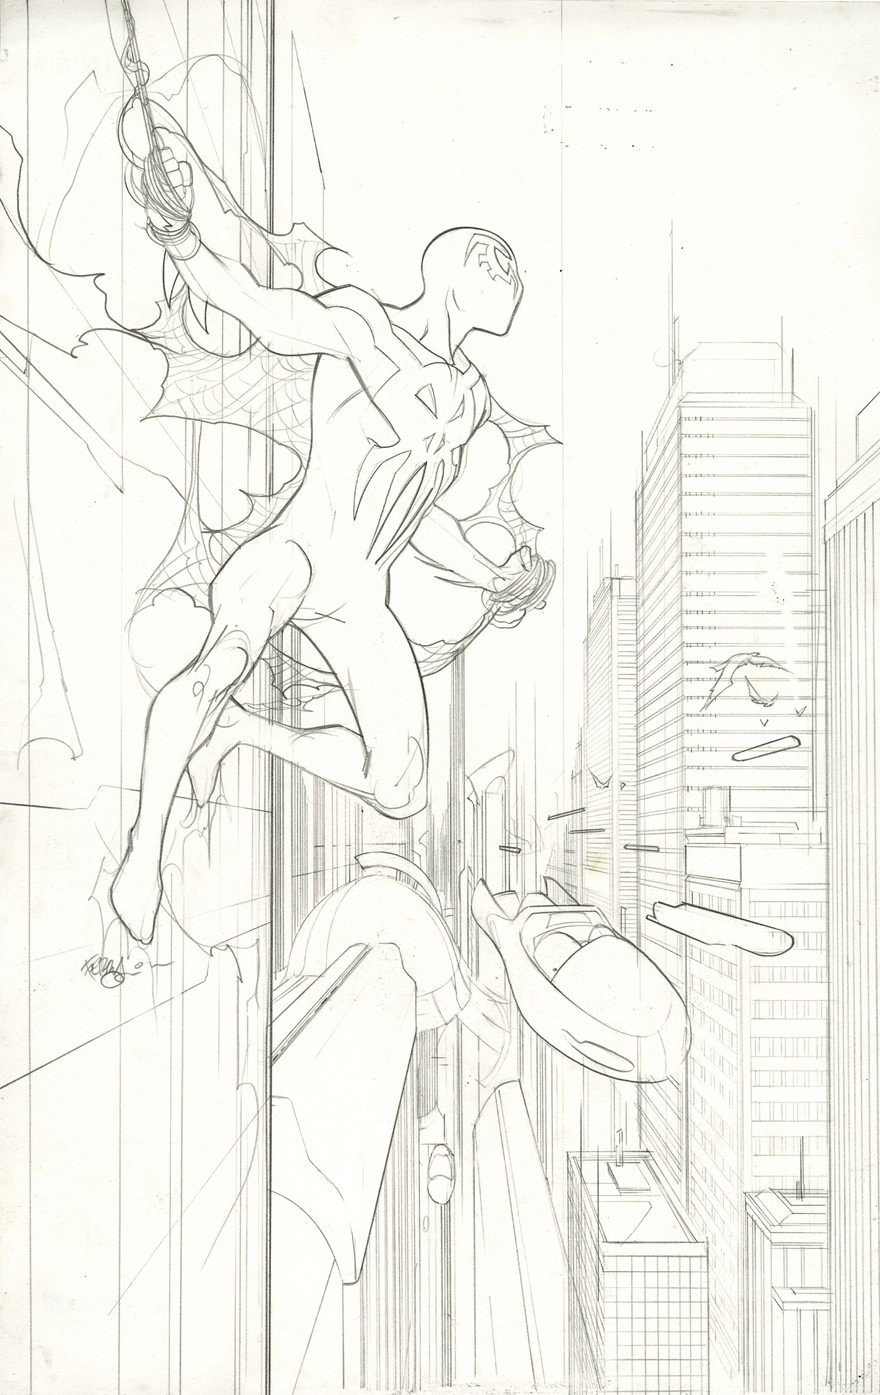 Spider-Man 2099 #2 Cover (LARGE SPIDEY!) 2014